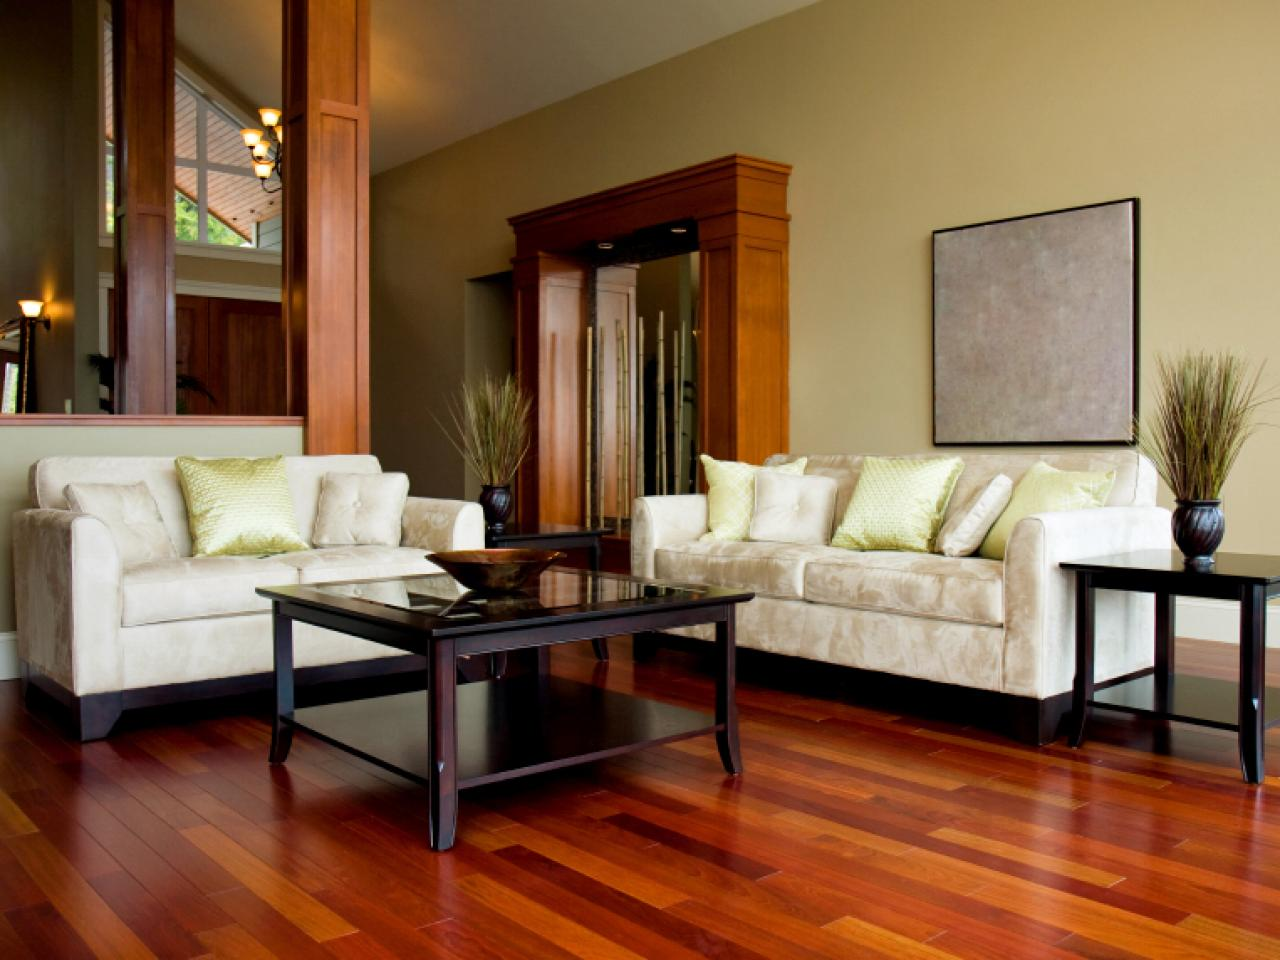 Guide to selecting flooring diy for Living room ideas oak flooring